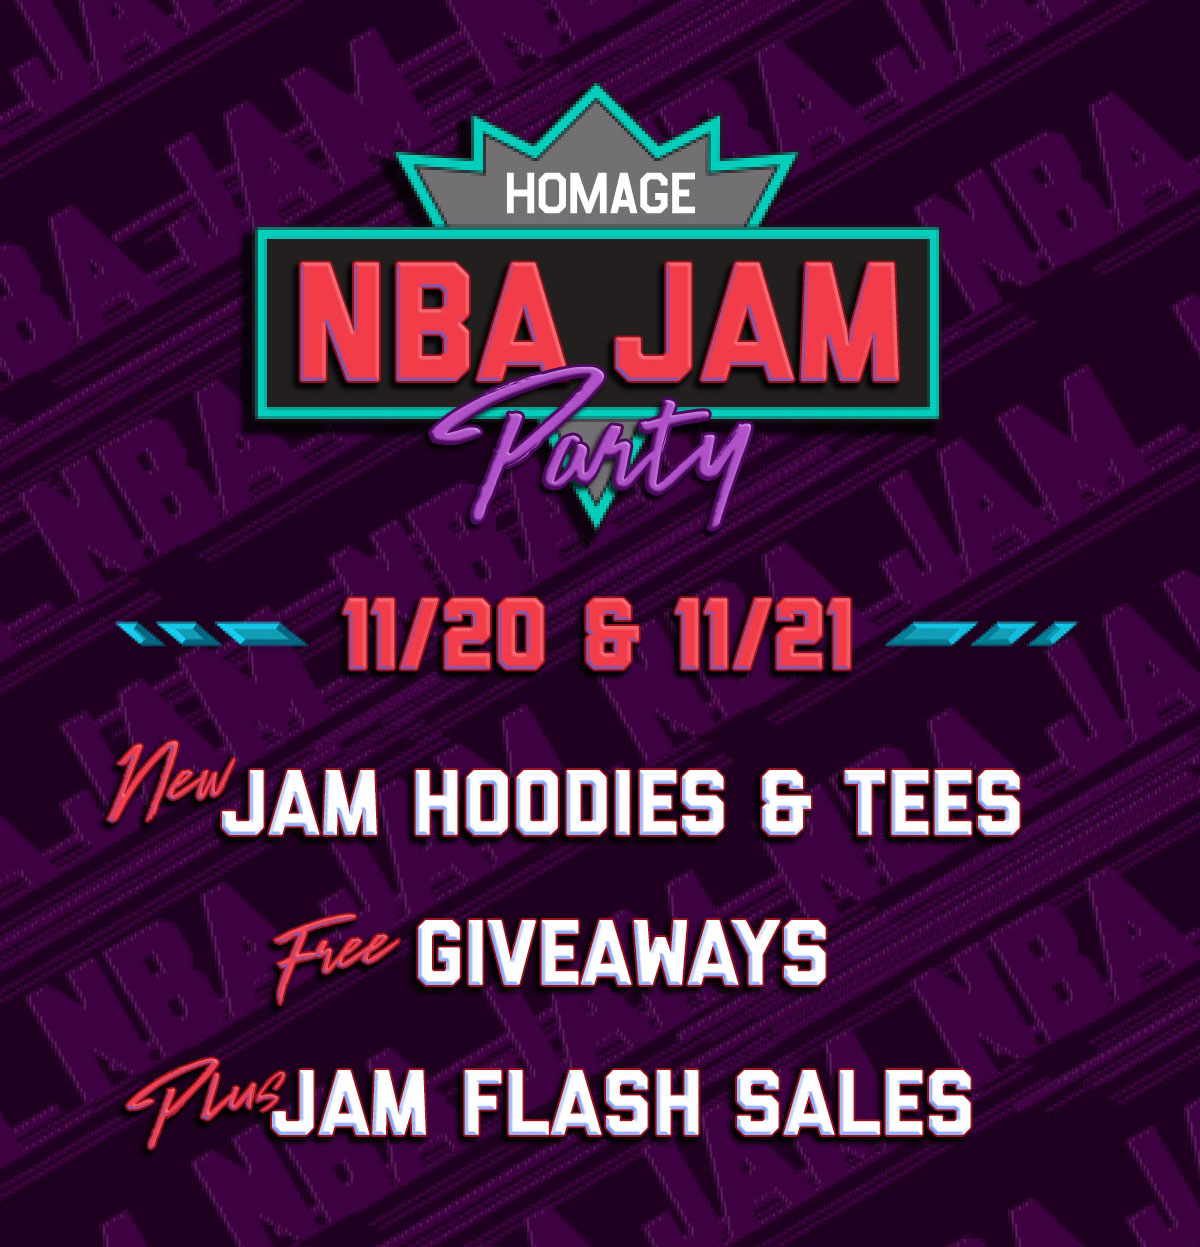 Homage NBA Jam Party! 11/20-11/21. New gear, giveaways, and sales.